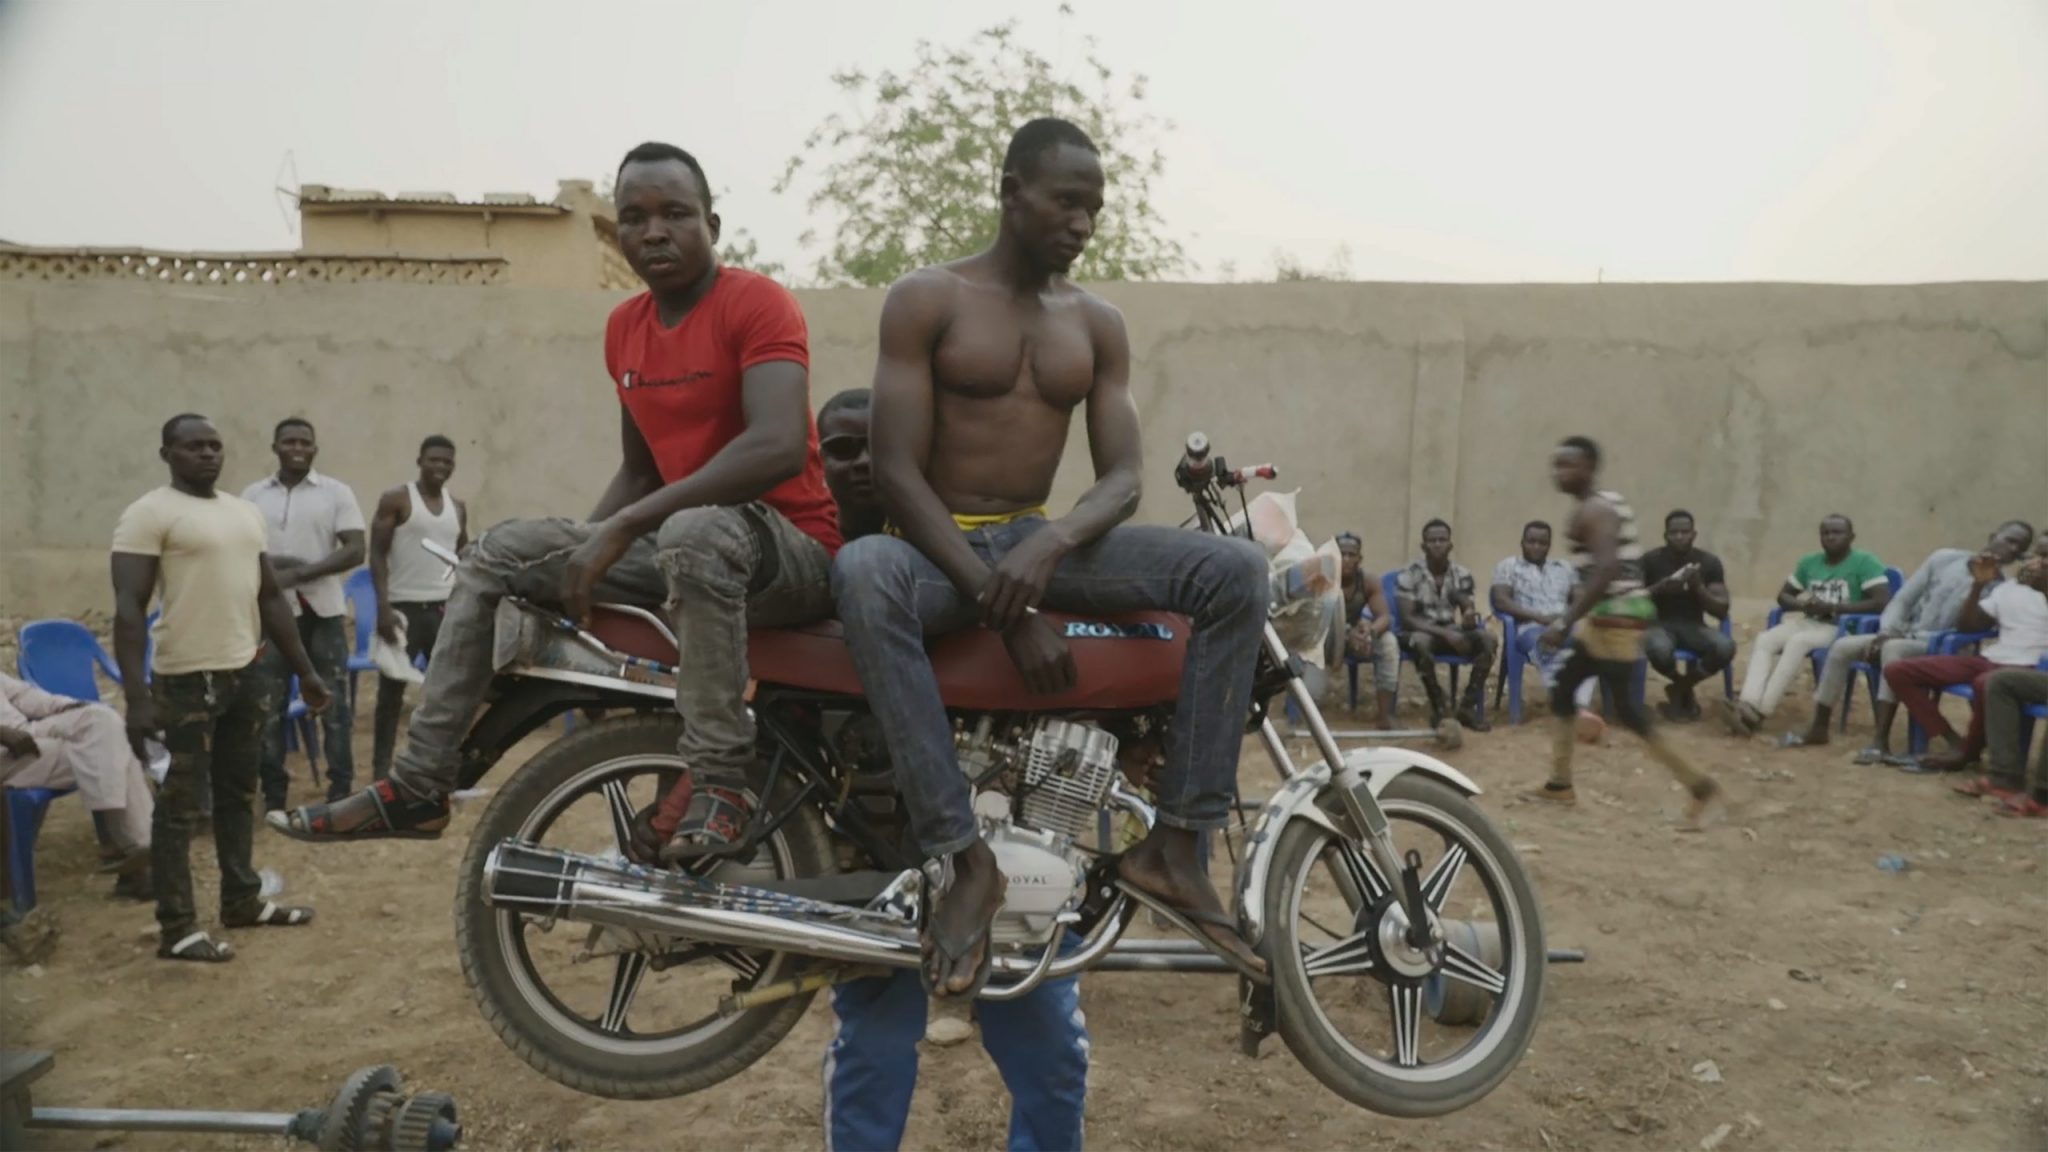 """Still from """"Zinder"""". In a dirt courtyard contained by a tall concrete wall, two men sit assertively atop a motorcycle held high above the ground by another man. Surrounding them are people standing and sitting in plastic chairs, watching the scene. Visible beyond the wall is a tree and the top of a low building."""